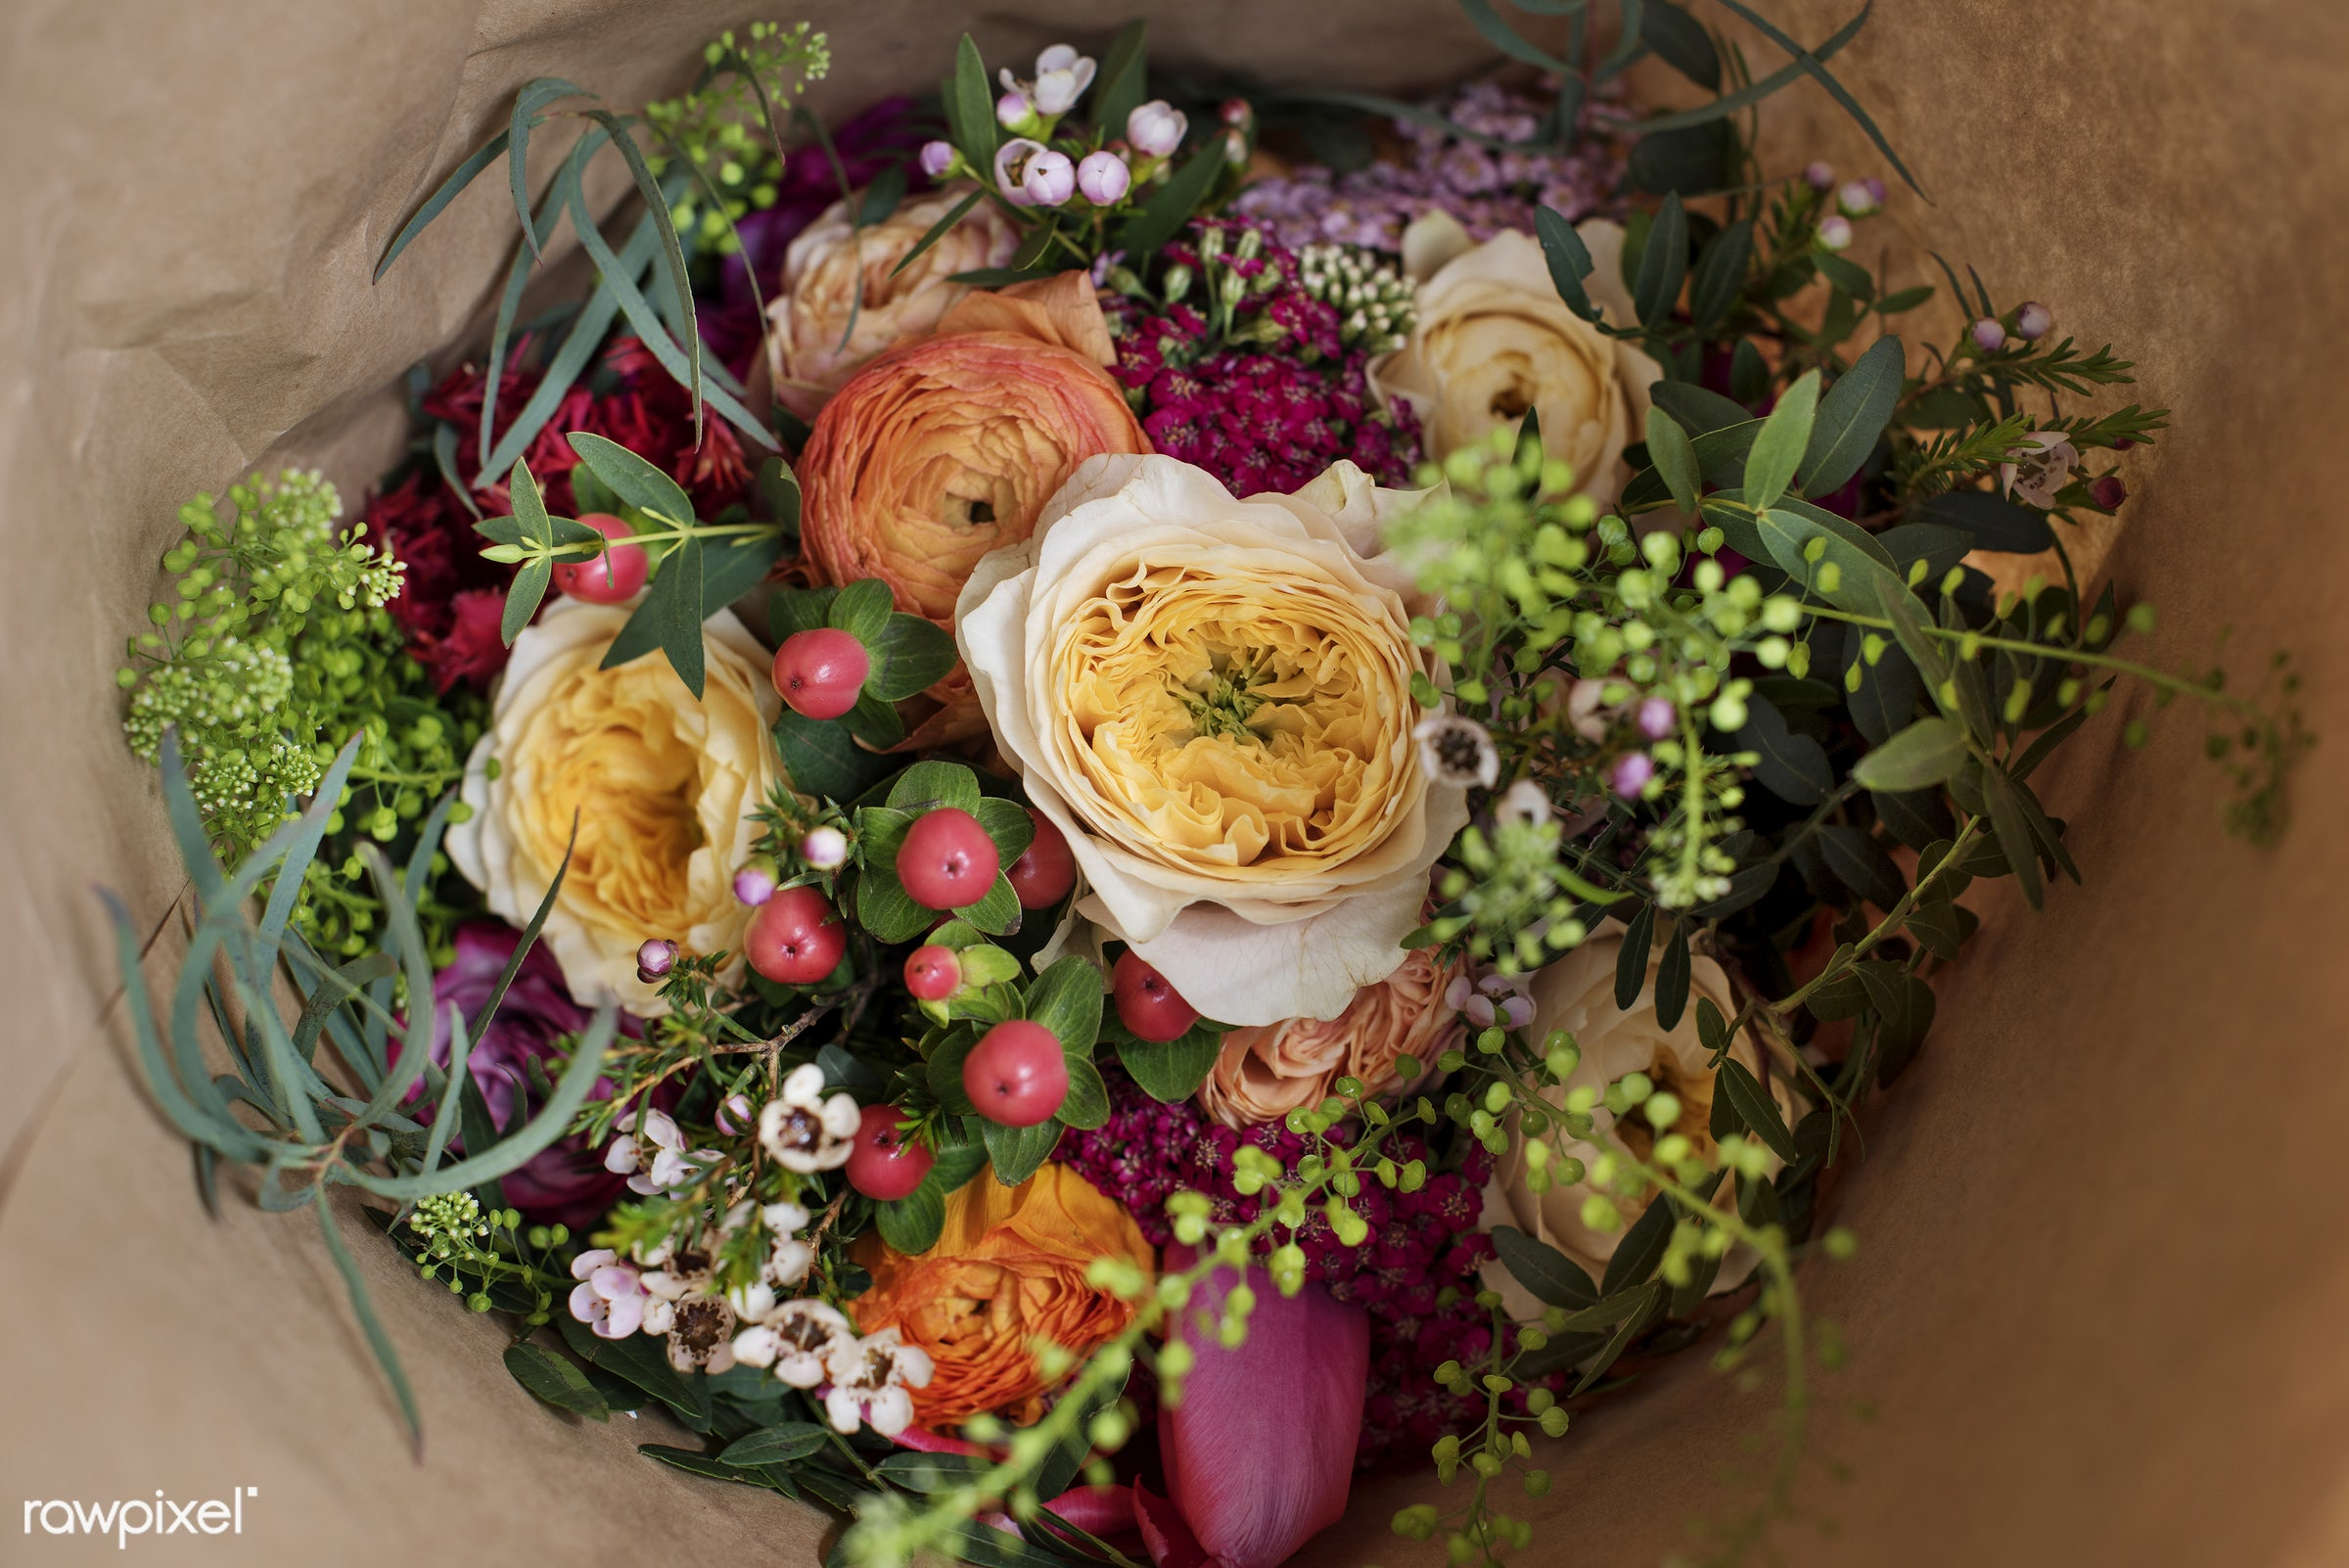 bouquet, craft, aromatic, decorative, handicraft, beauty, spring, rustic, handiwork, blossom, style, nature, vintage, flora...